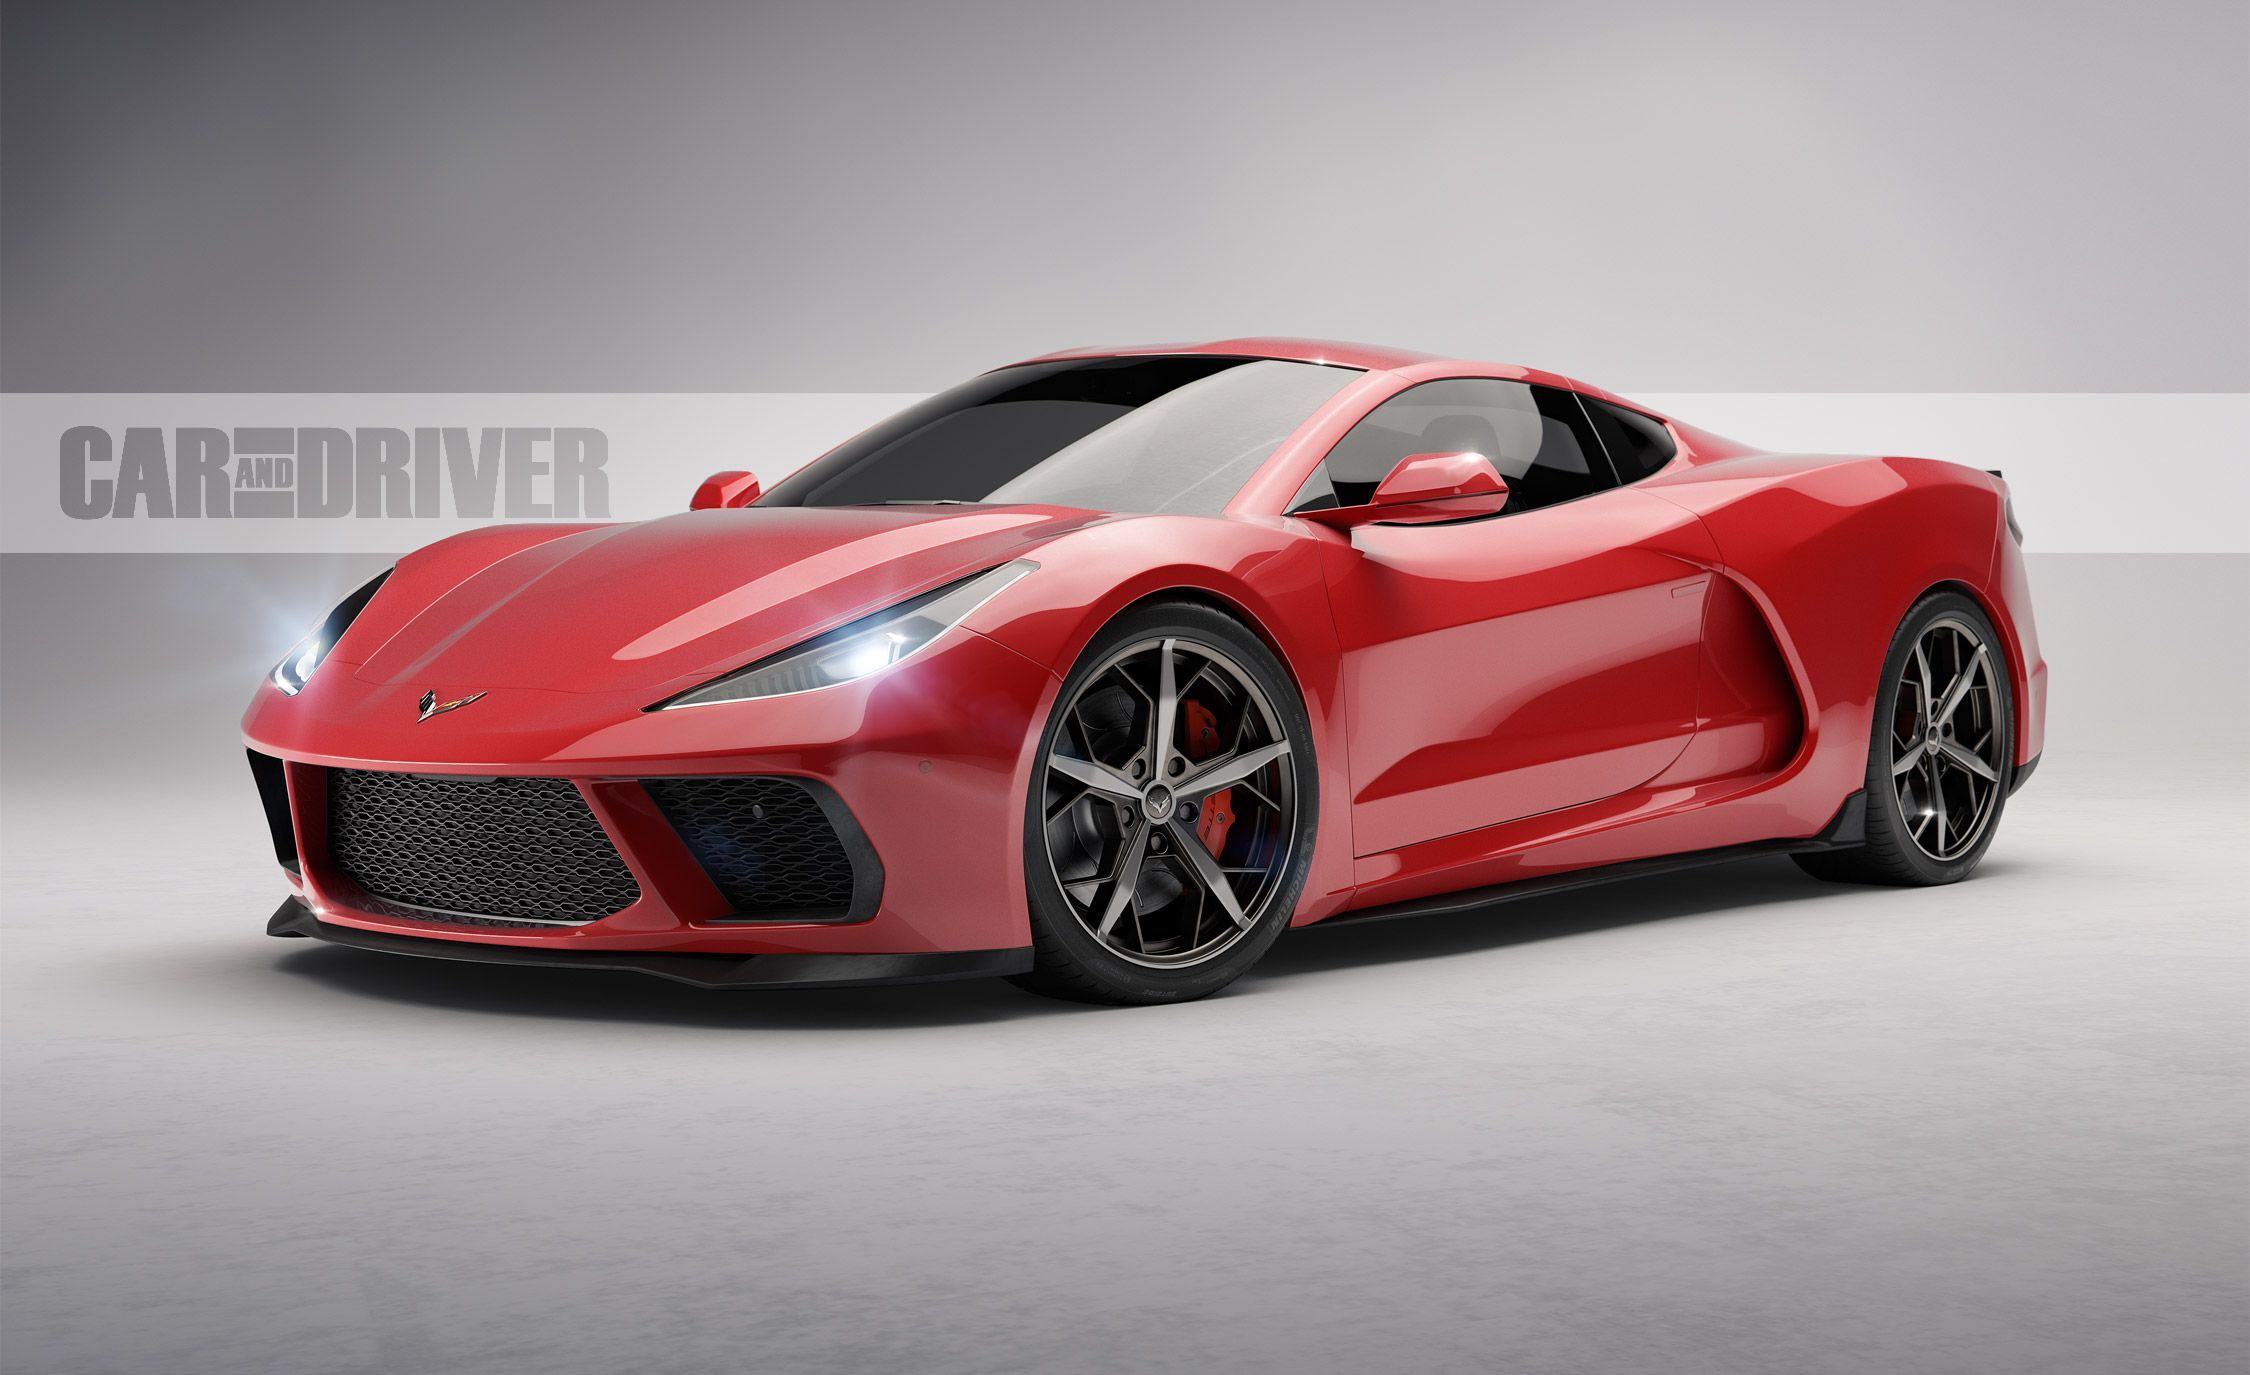 2020 Chevrolet Corvette C8 The Mid Engined White Whale Is Nearly Here 25 Cars Worth Waiting For Car And Driver